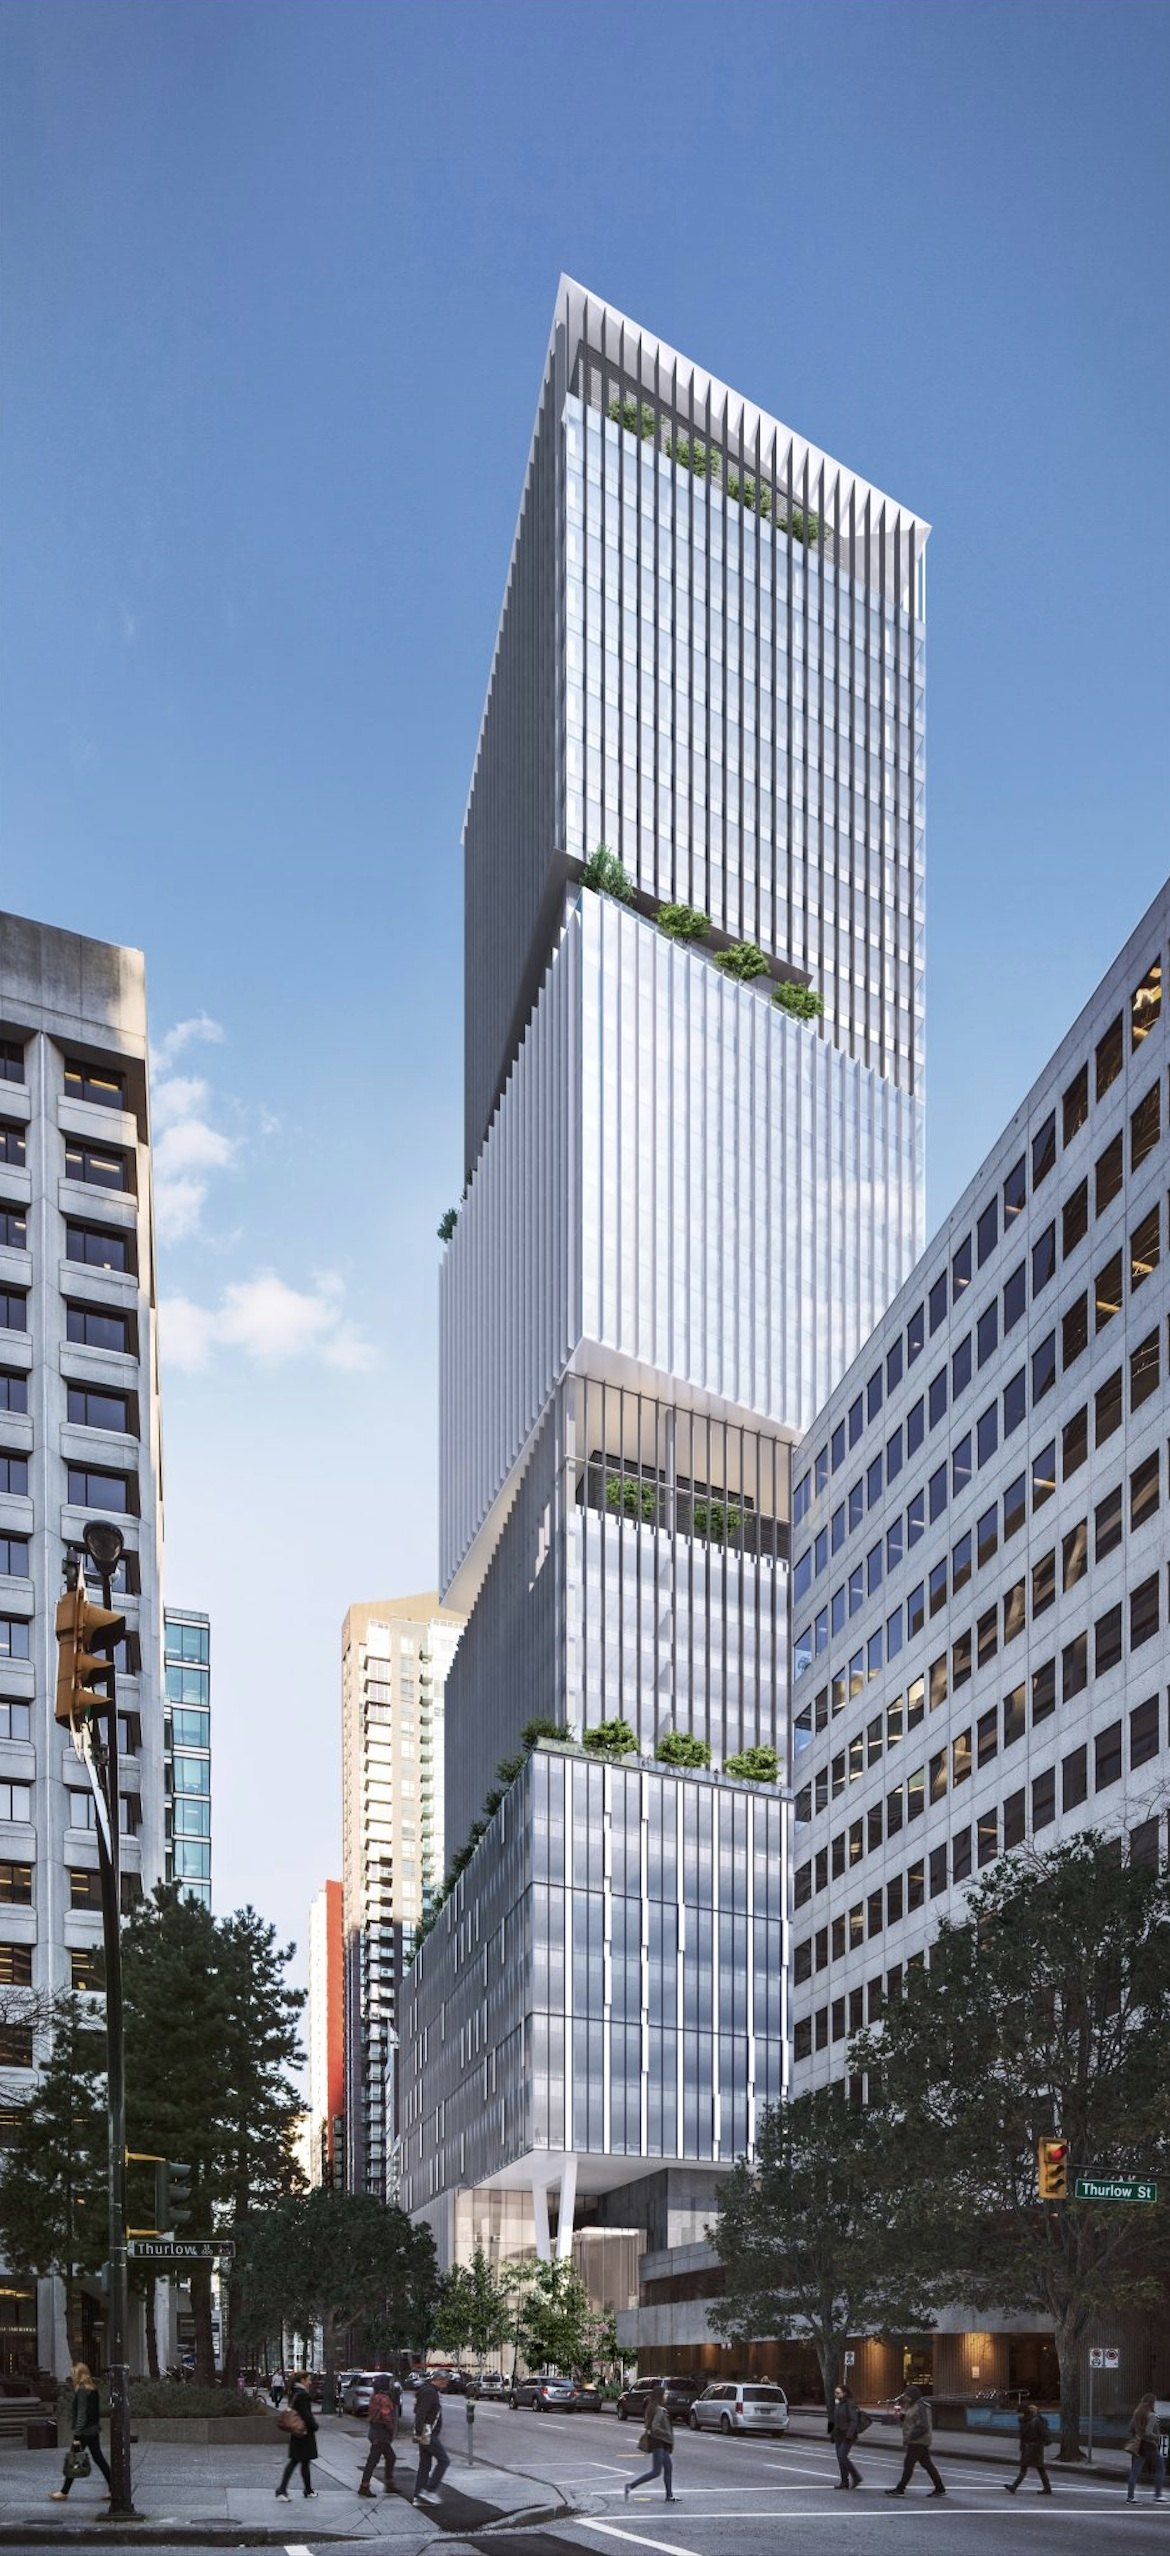 550-foot-tall 'stacked box' office tower proposed for ...